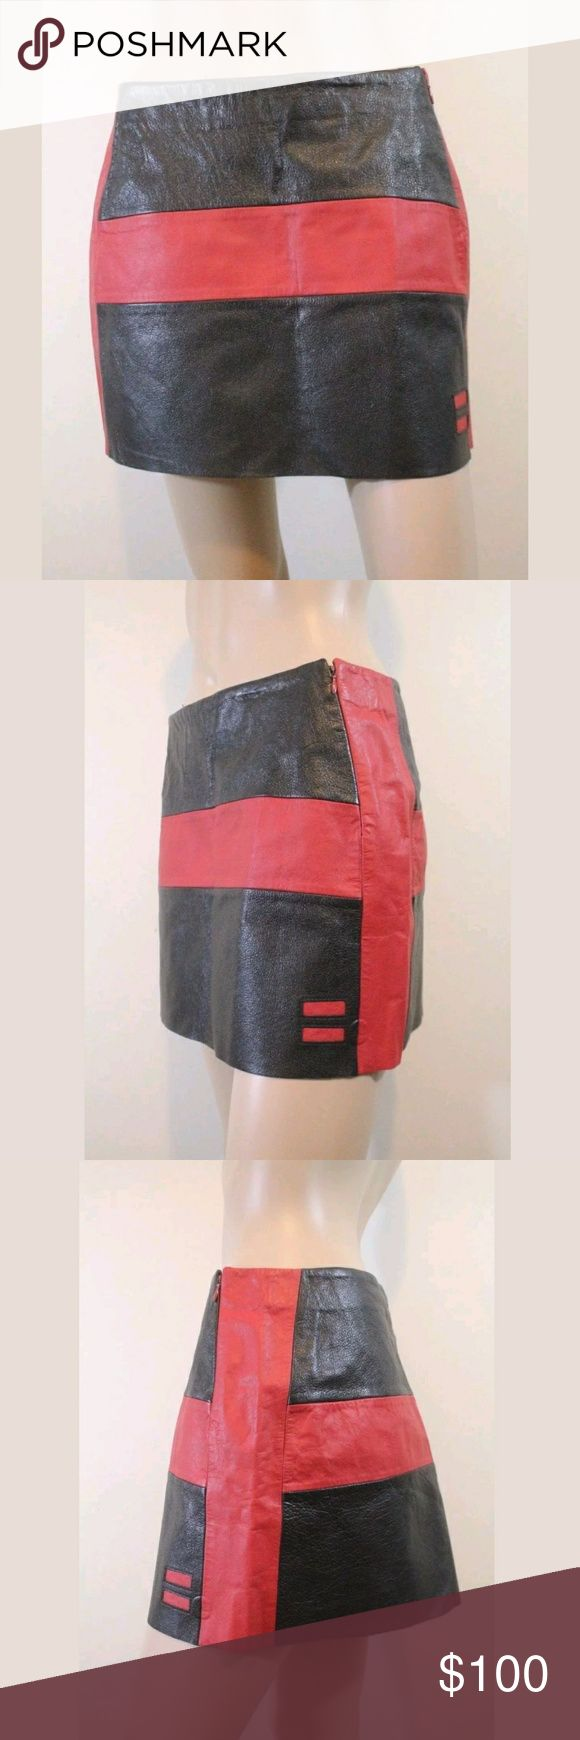 Diesel Leather Colorblock Cross Mini Skirt S Condition   - Minimal wear, indent from store tag  - Excellent condition! SUPER RARE!   Details   - Side zip with hook and eye closure    Measurements   Bust: -    Waist: 14 inches across (28 around)   Hip: 19 inches across (38 around)    Length: 13 1/2 inches long   Sleeve length: -    Size   Marked L, will fit S best, see measurements    Materials   100% leather Diesel Skirts Mini